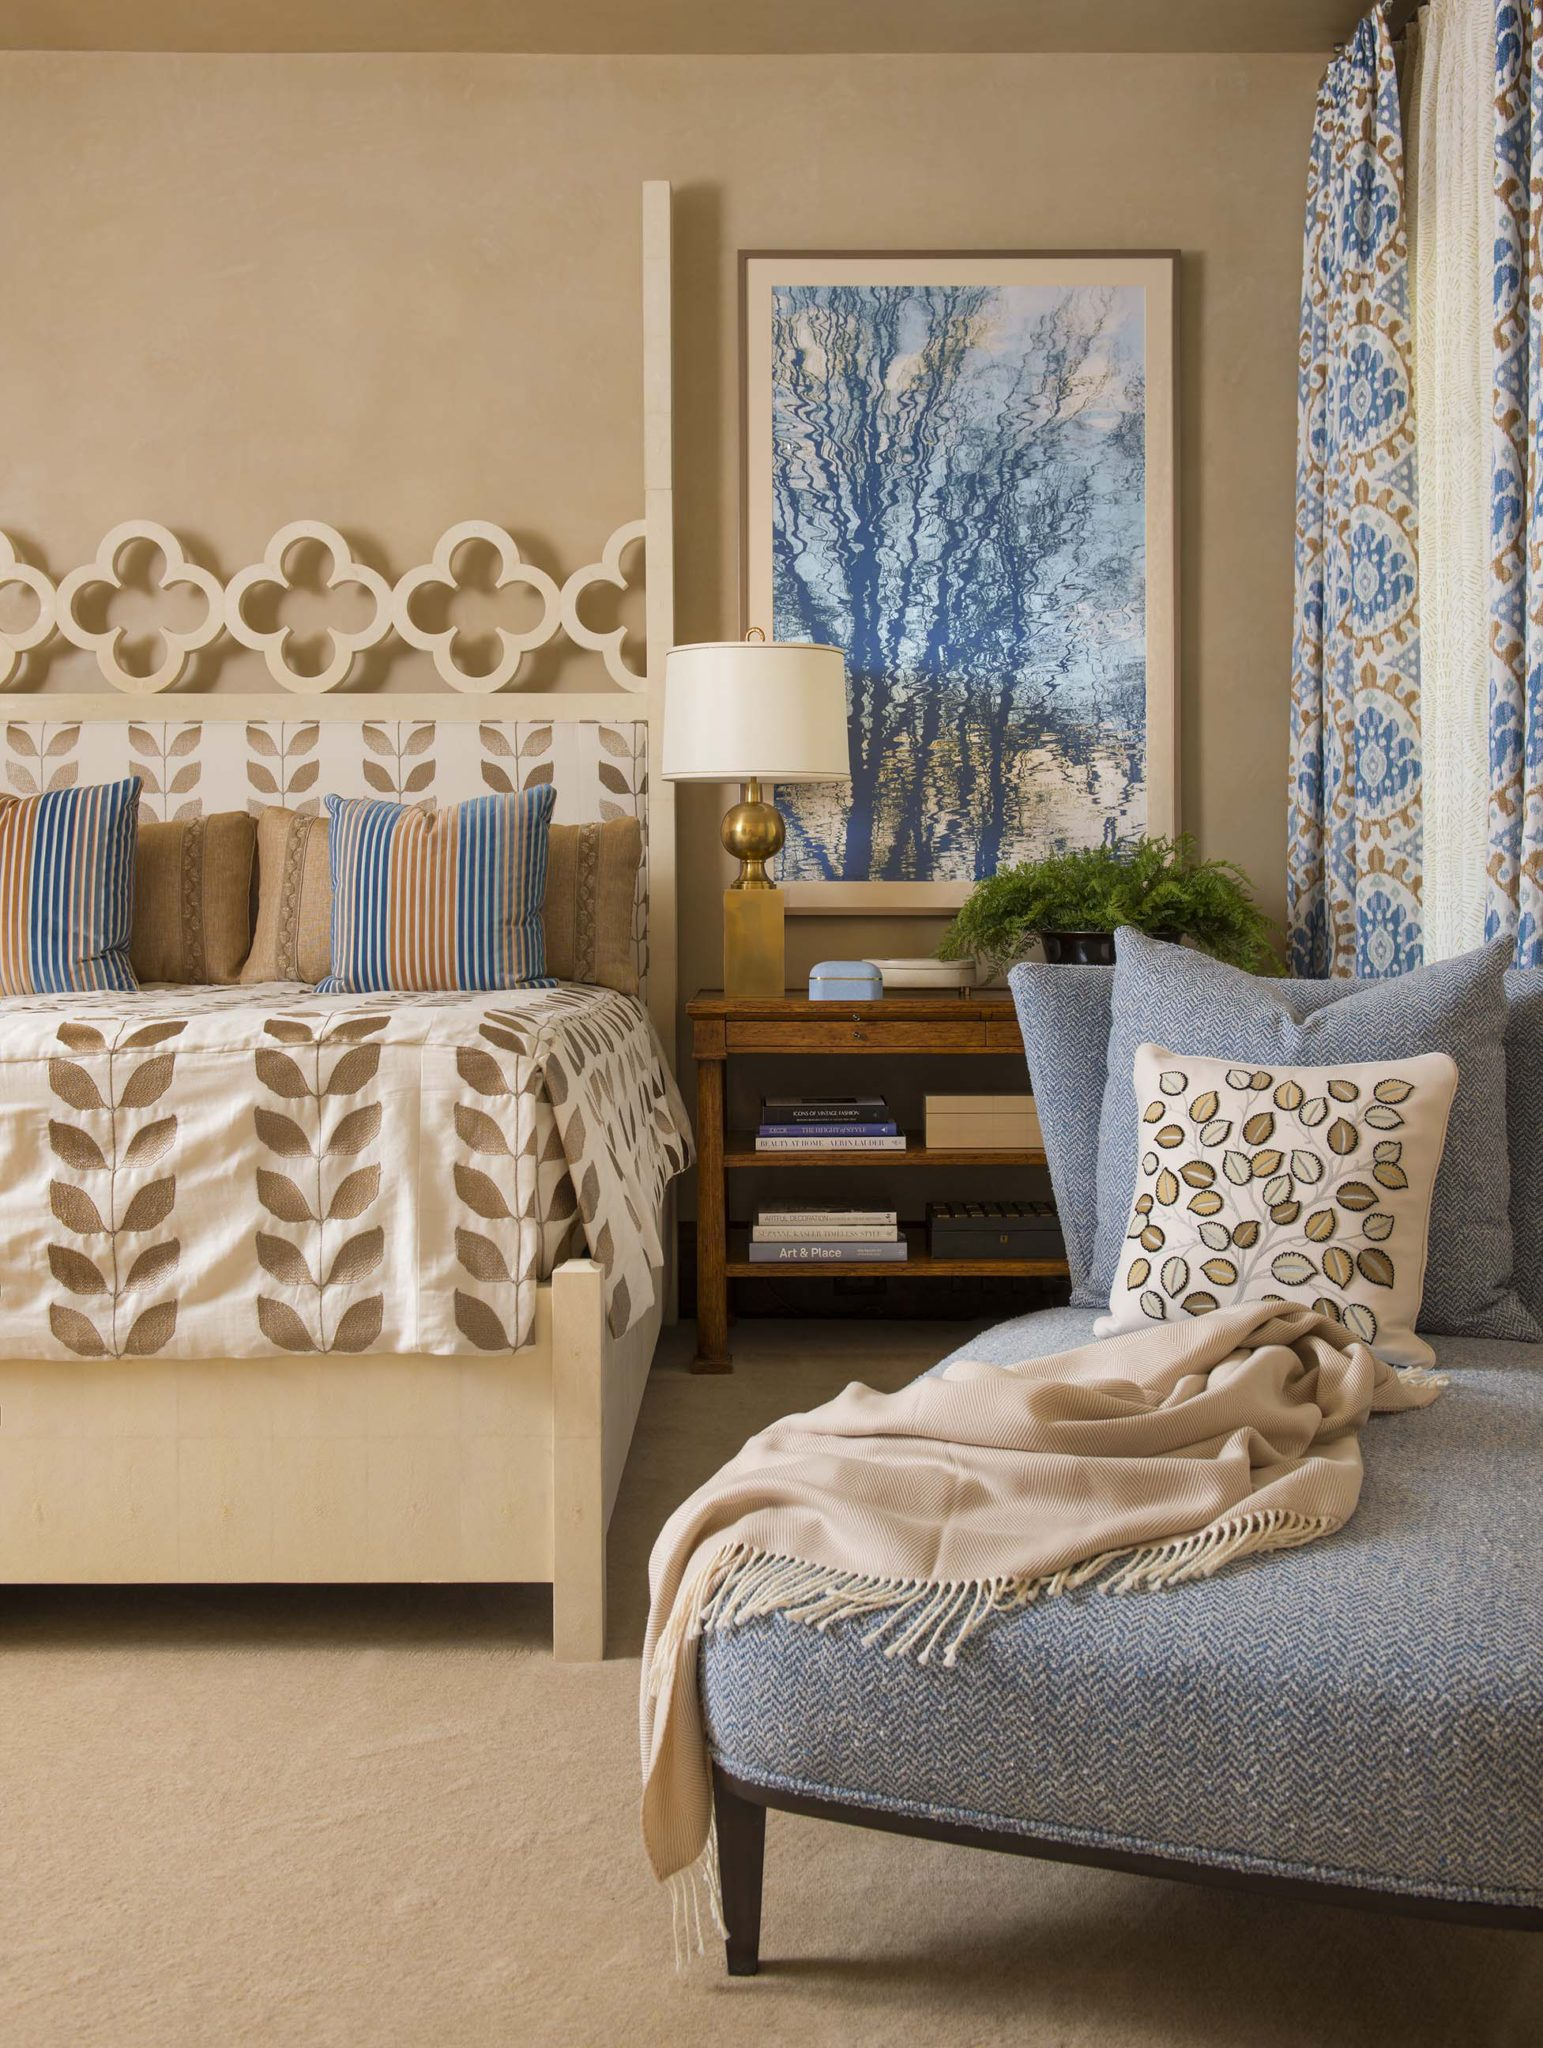 A wonderful use of different patterns and modern art by Corley Design